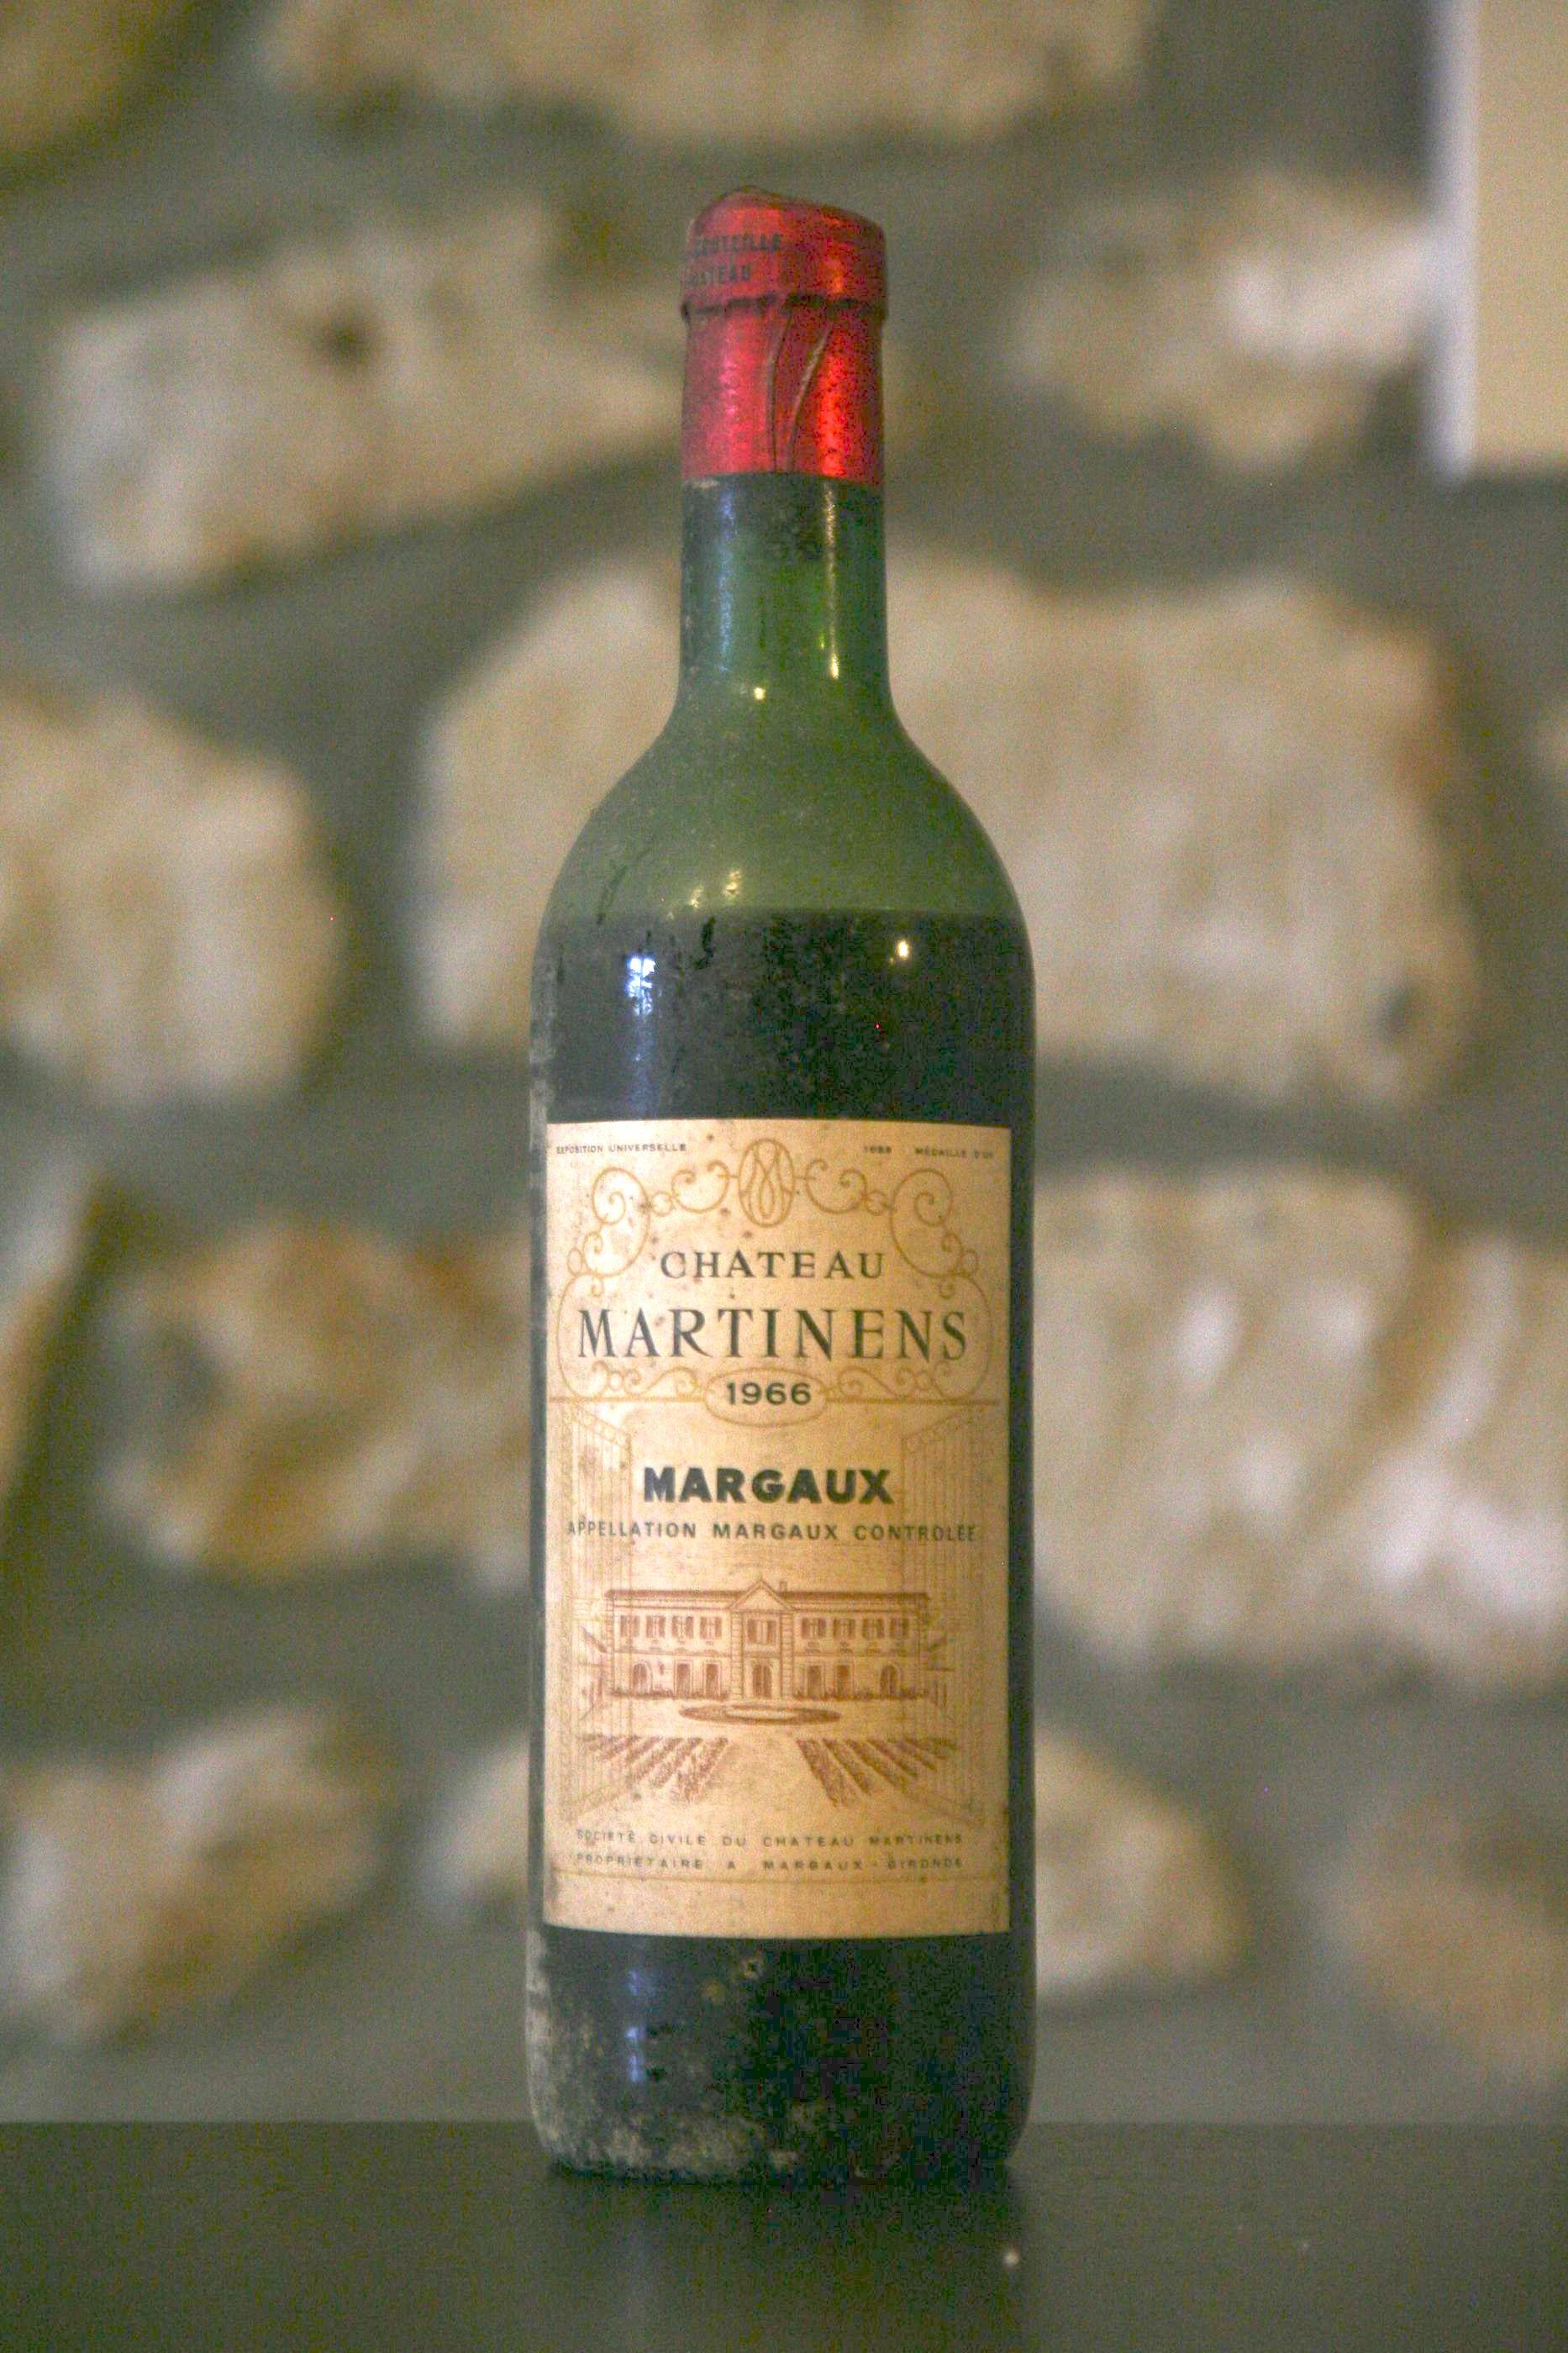 Price Of Chateau Martinens 1966 From On Uvinum